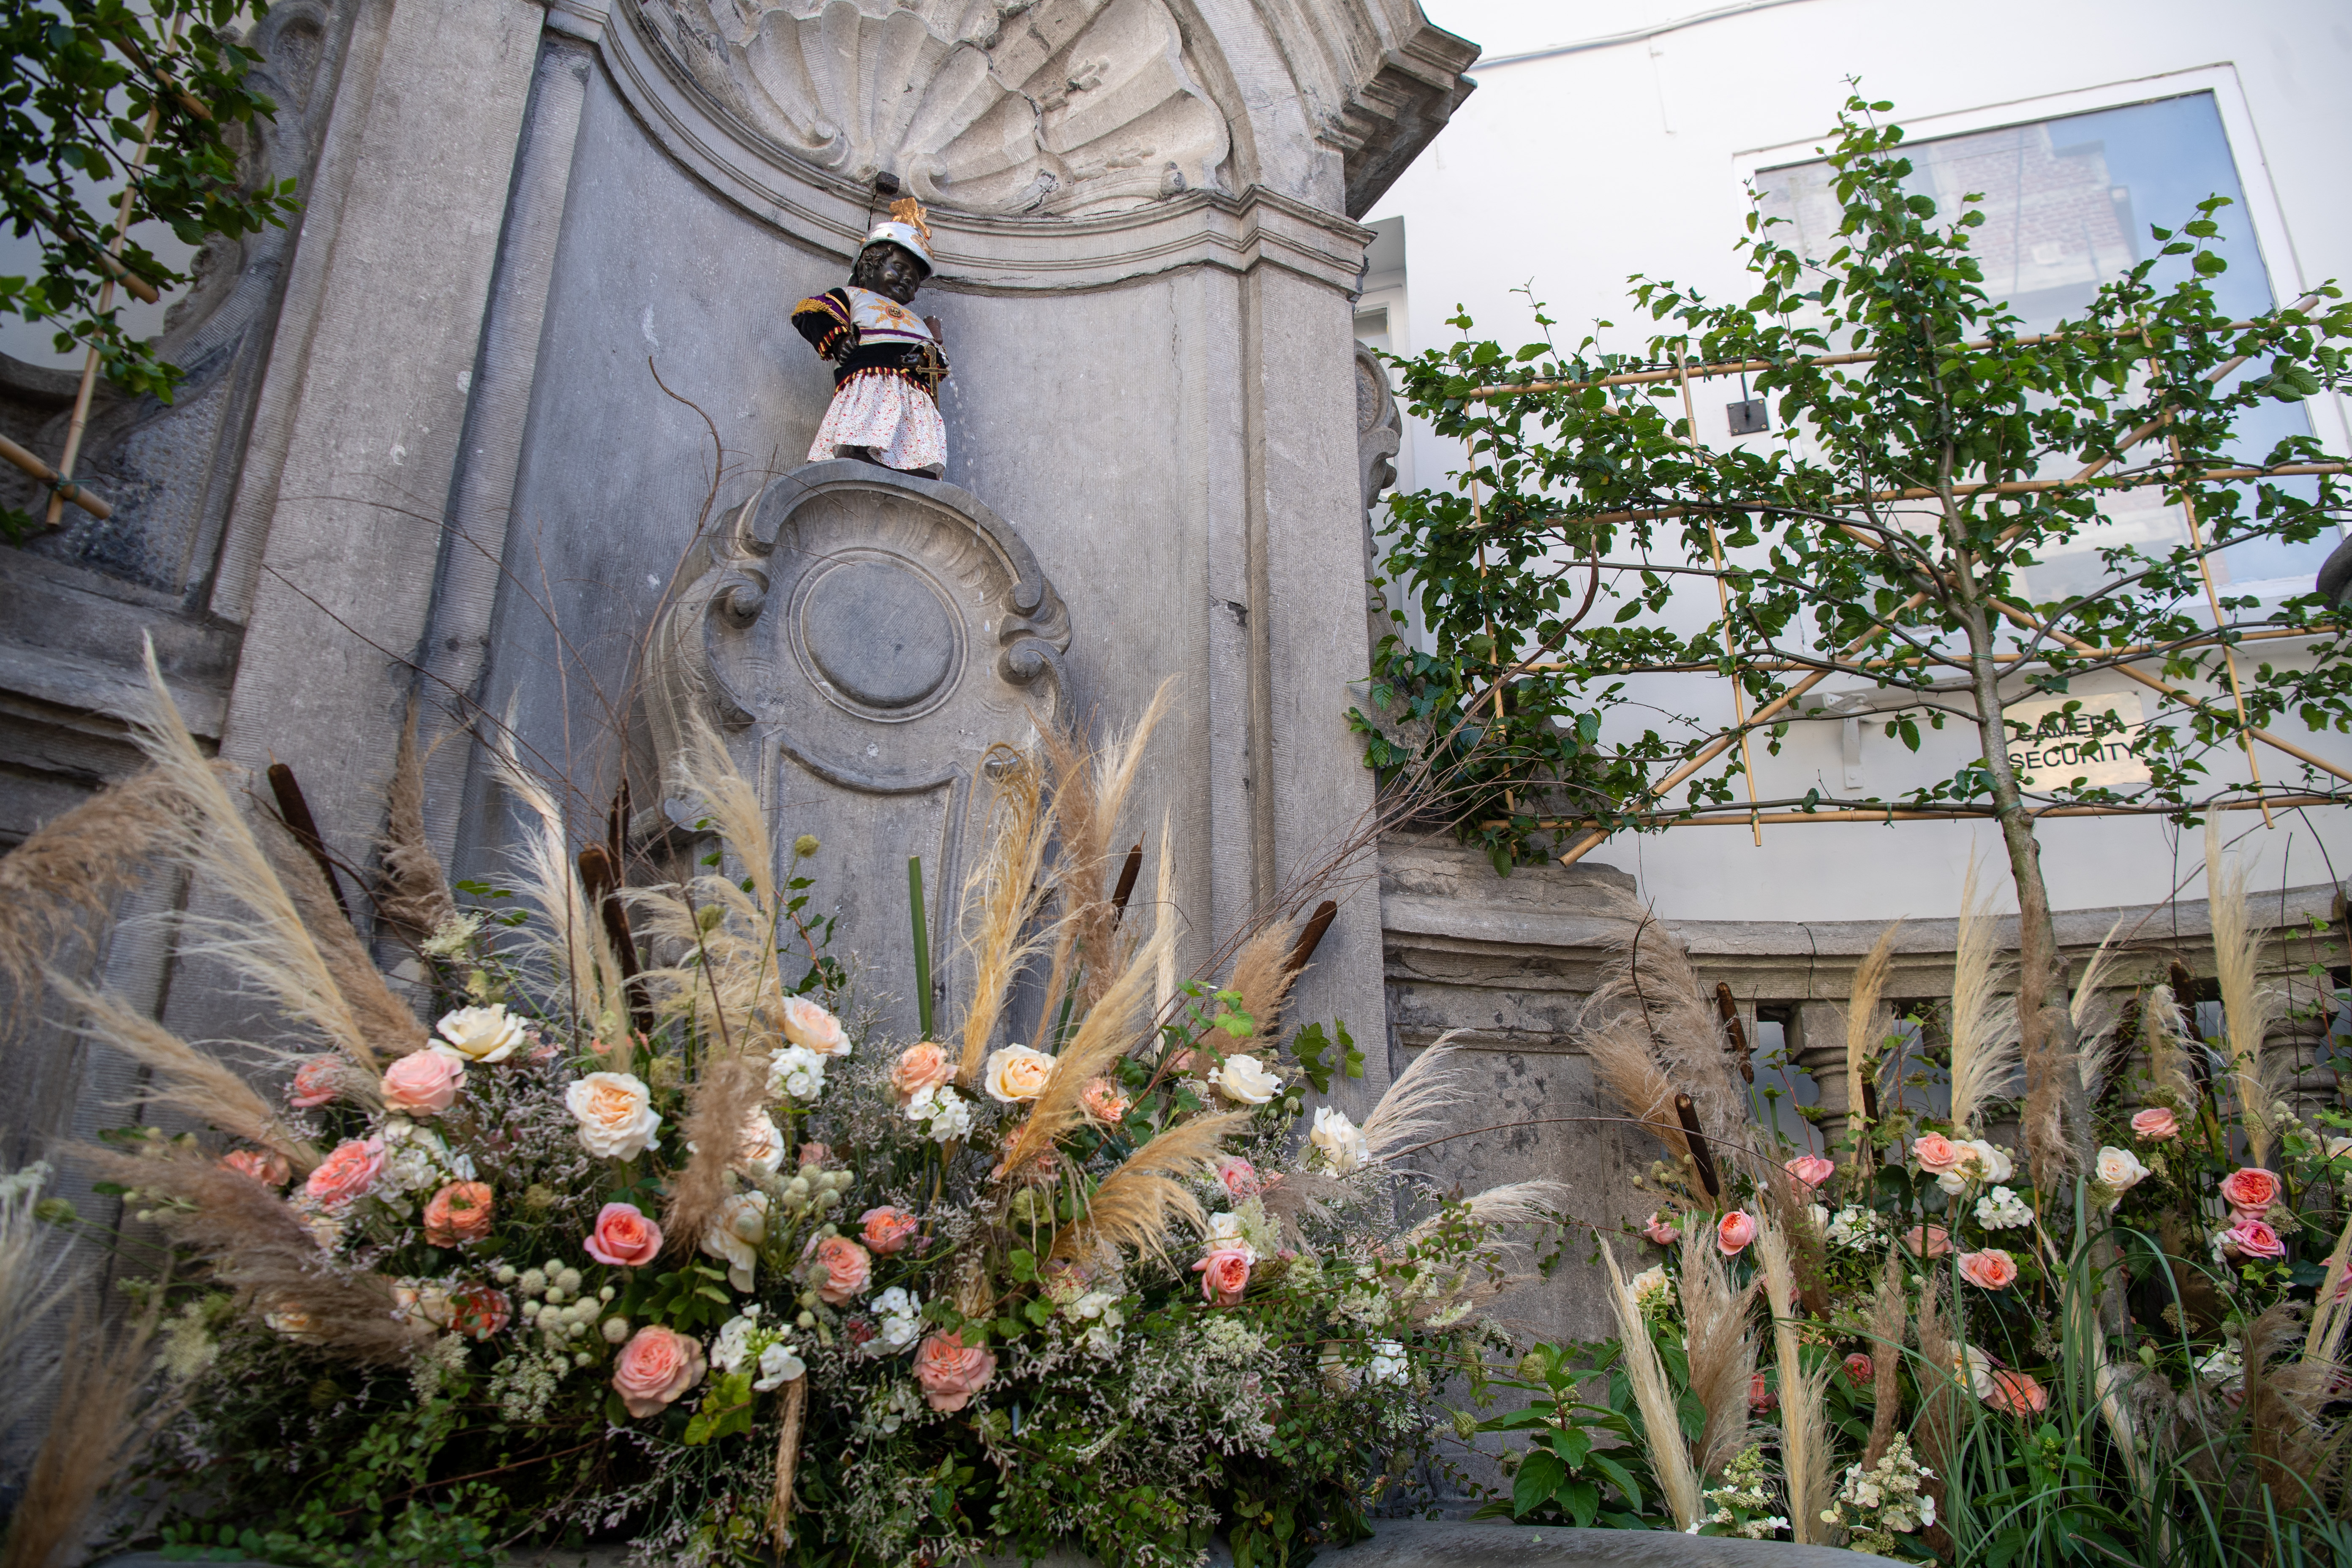 The Manneken-Pis surrounded with flowers